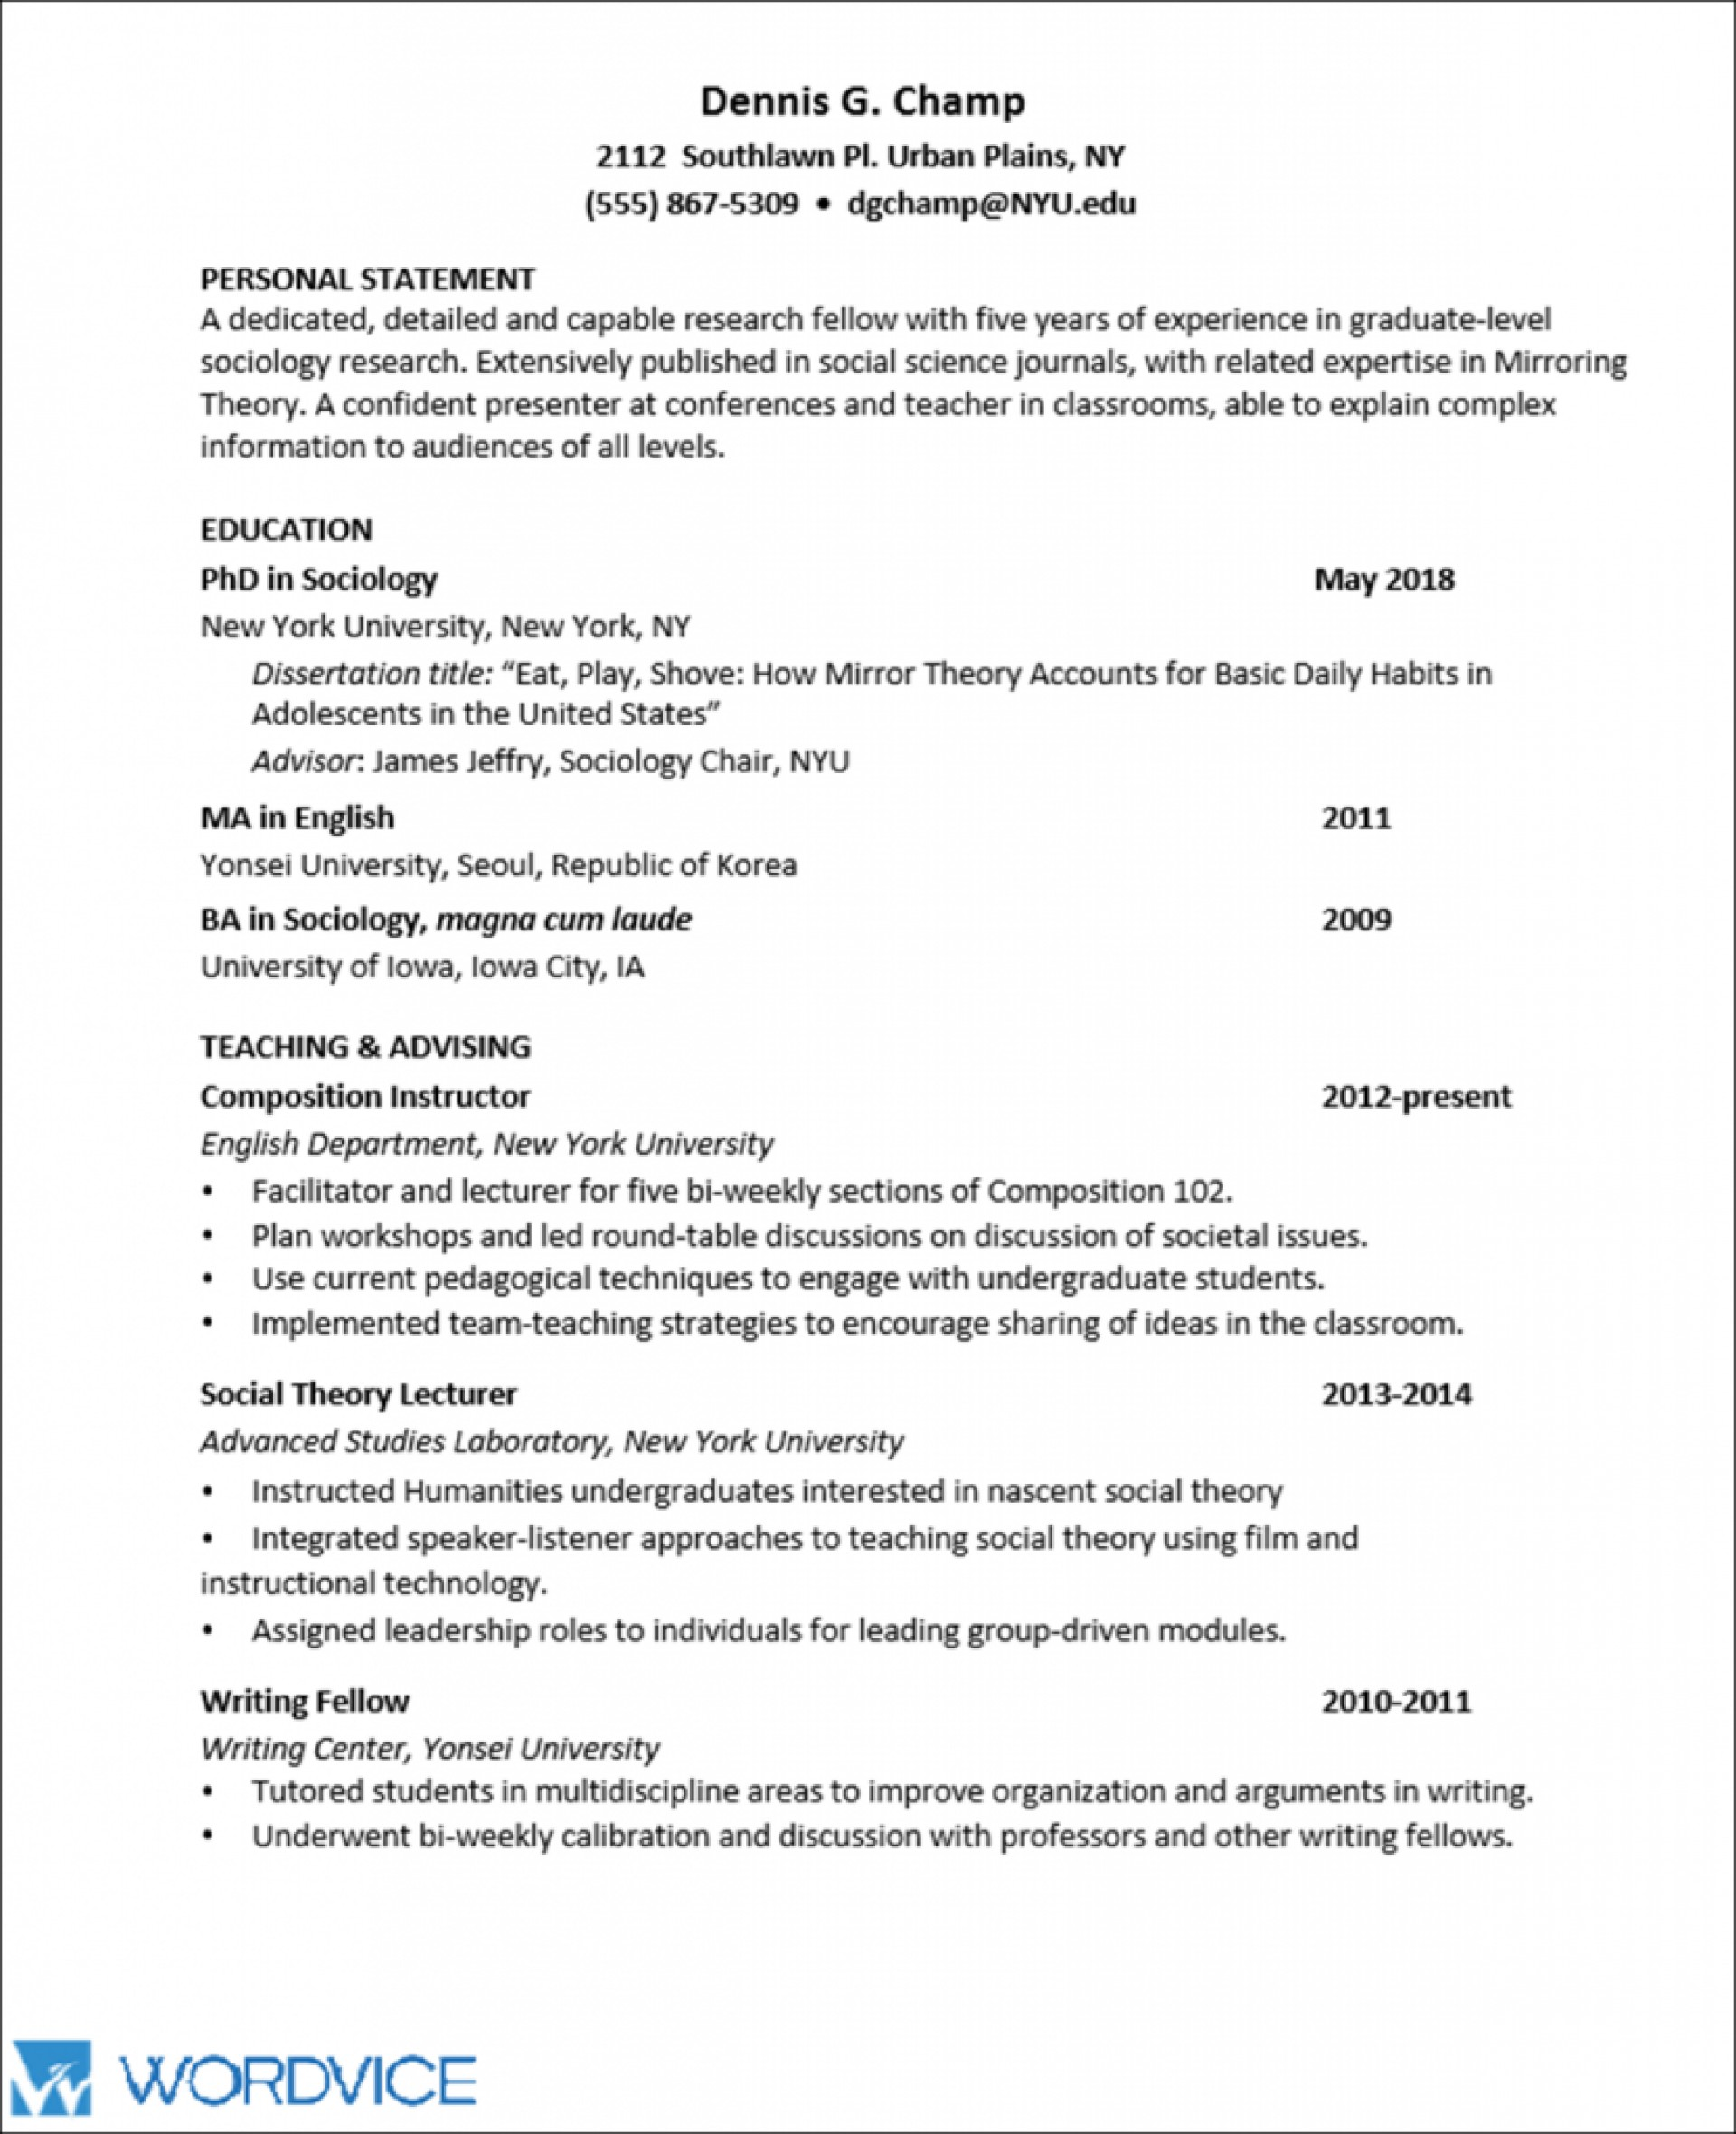 008 Example Of Discussion Part Research Paper Academic Cv Graphic2 Stunning A Findings And In Results Qualitative Conclusion 1920